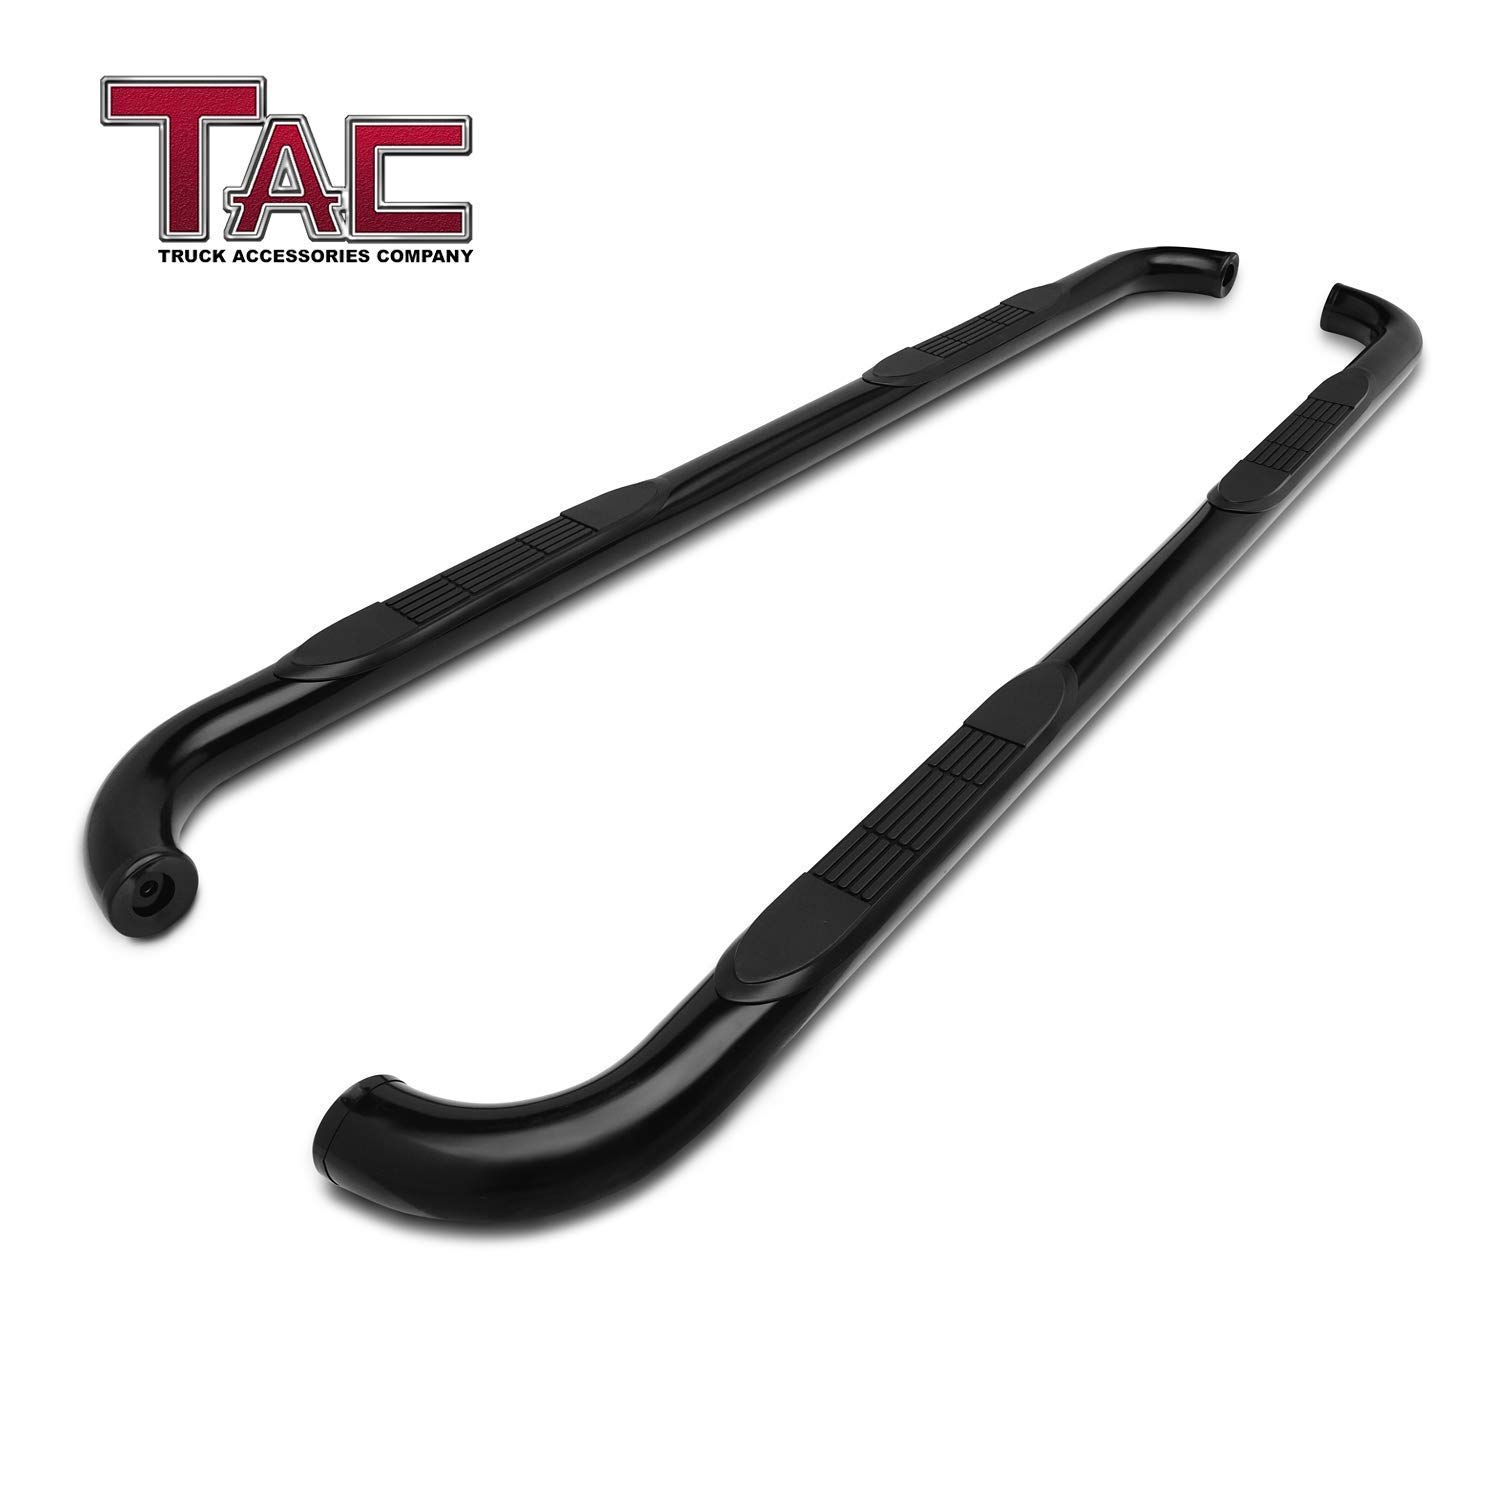 TAC Side Steps Running Boards Fit 2019 Chevy Silverado/GMC Sierra 1500 Crew Cab (Excl. Body Lift Kit) Truck Pickup 3'' Black Side Bars Step Rails Nerf Bars Off Road Accessories (2 pcs)